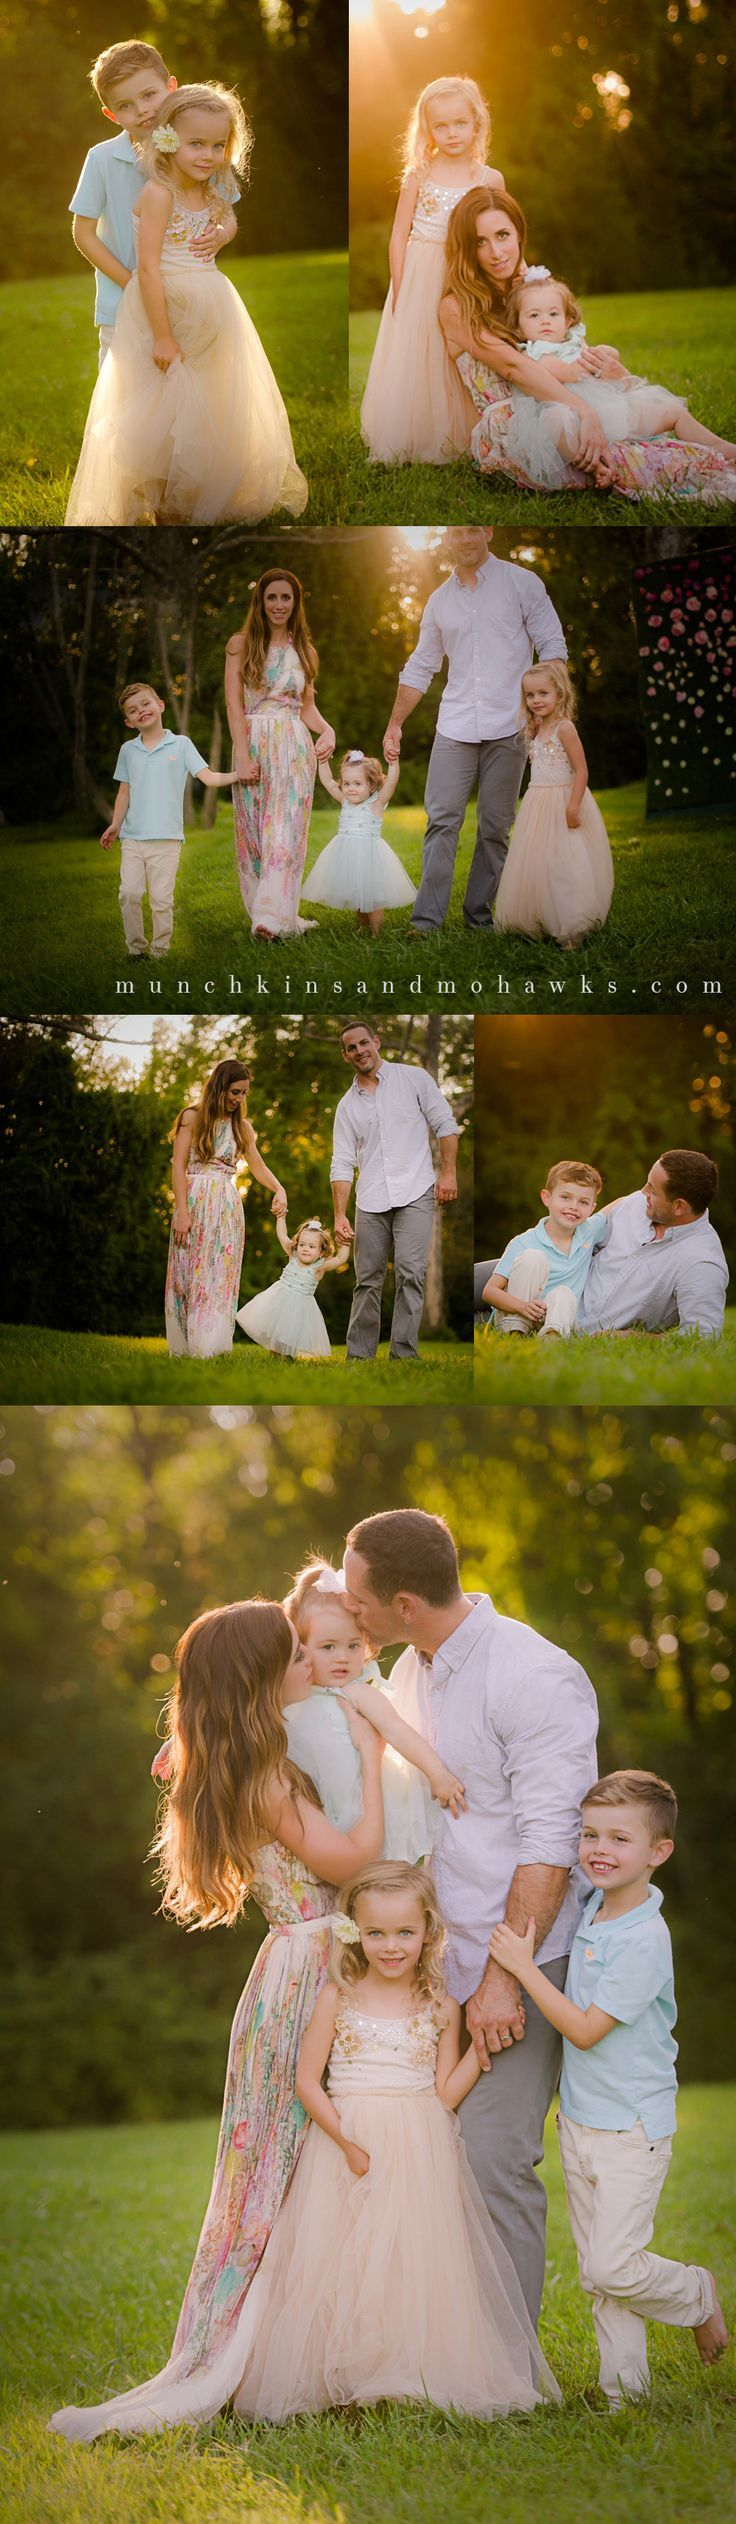 Pittsburgh Penguins Child and Family Portraits Craig Adams Family pics, family pictures, family photography tips #photography